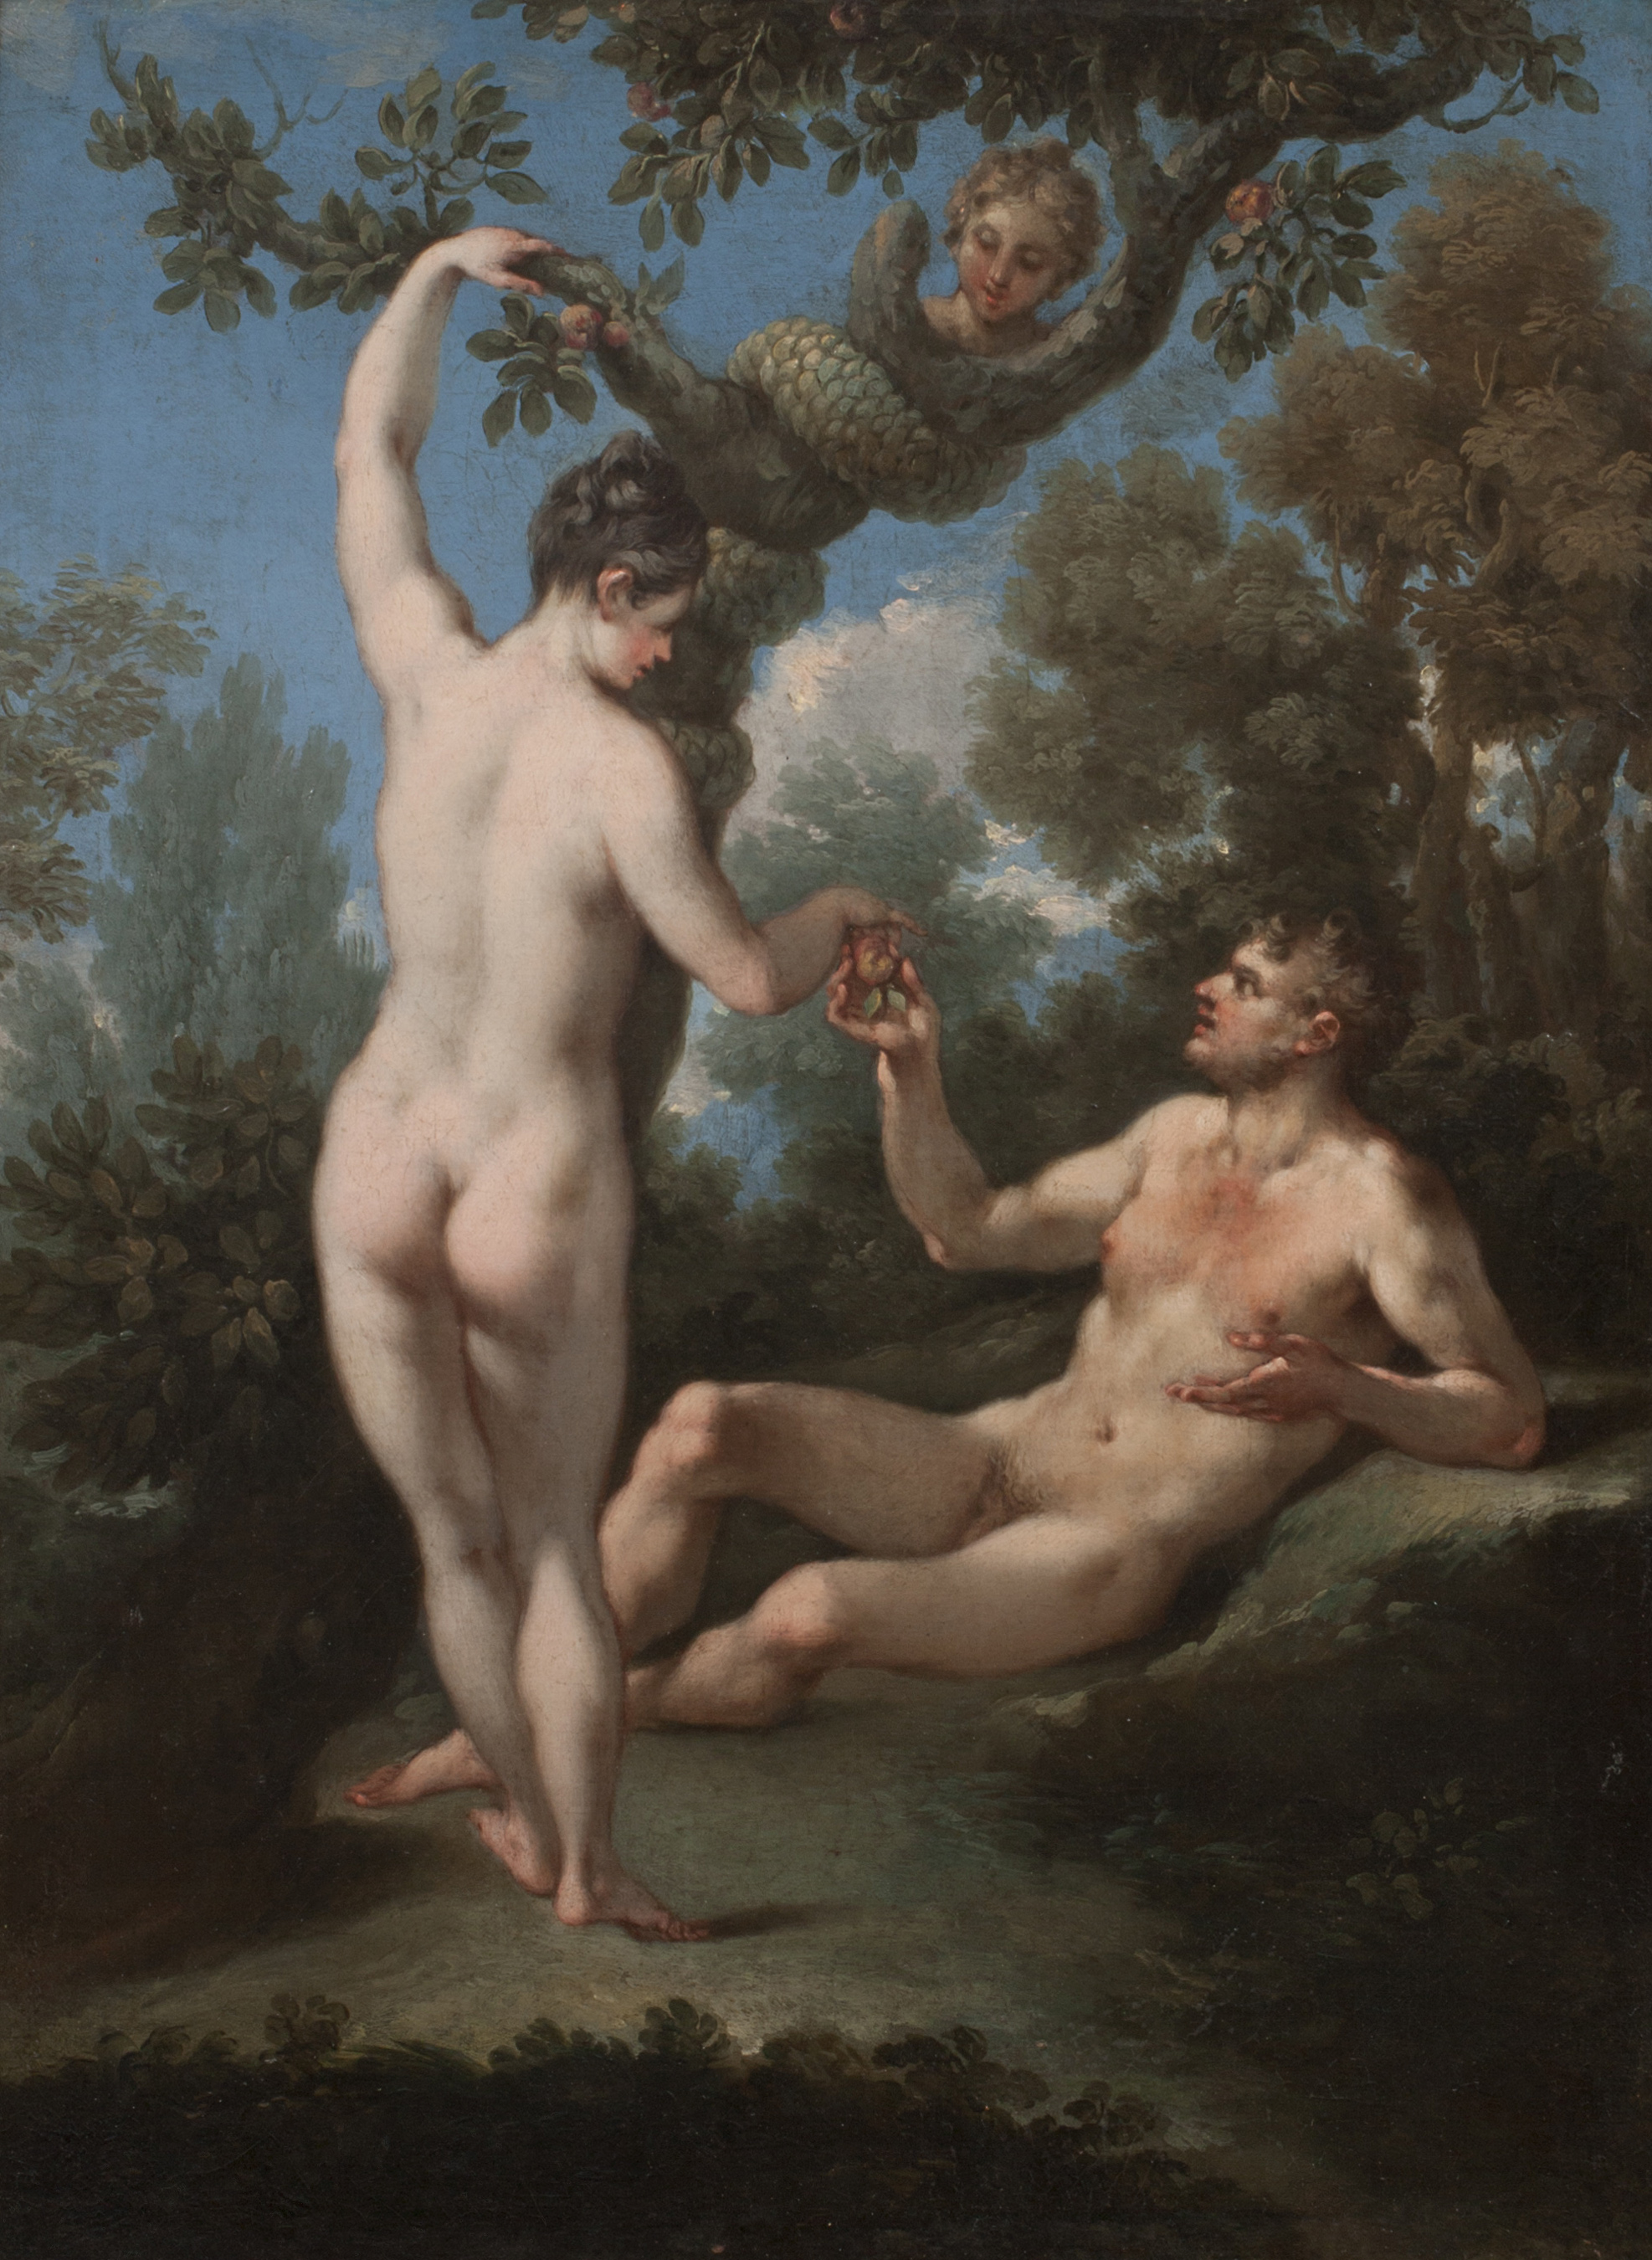 Michele Rocca, The Temptation of Adam and Eve. Oil on canvas.